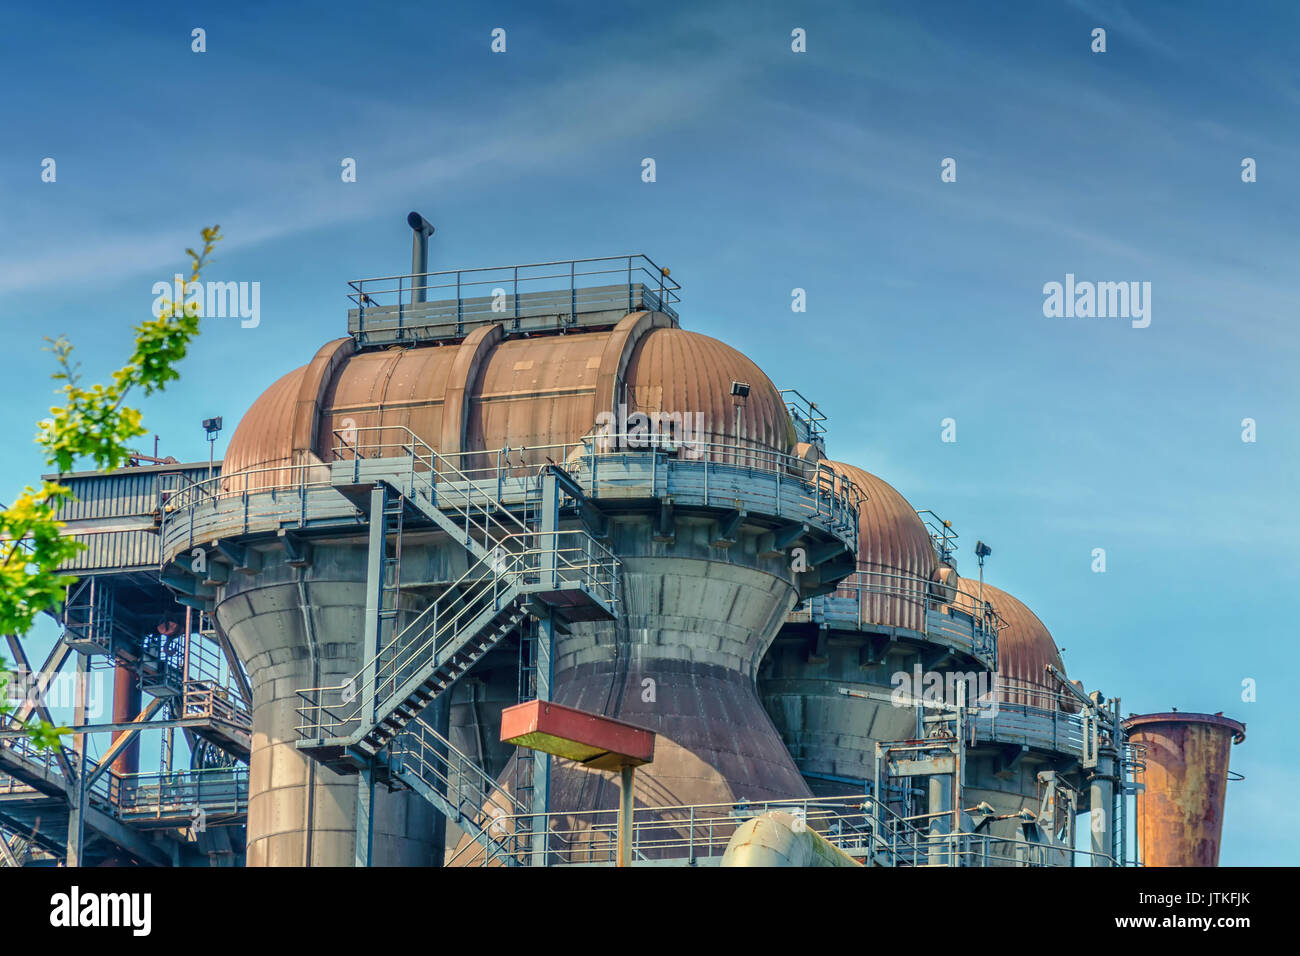 General view of an industrial plant refinery, consisting of pipes and towers of heavy industry. Stock Photo